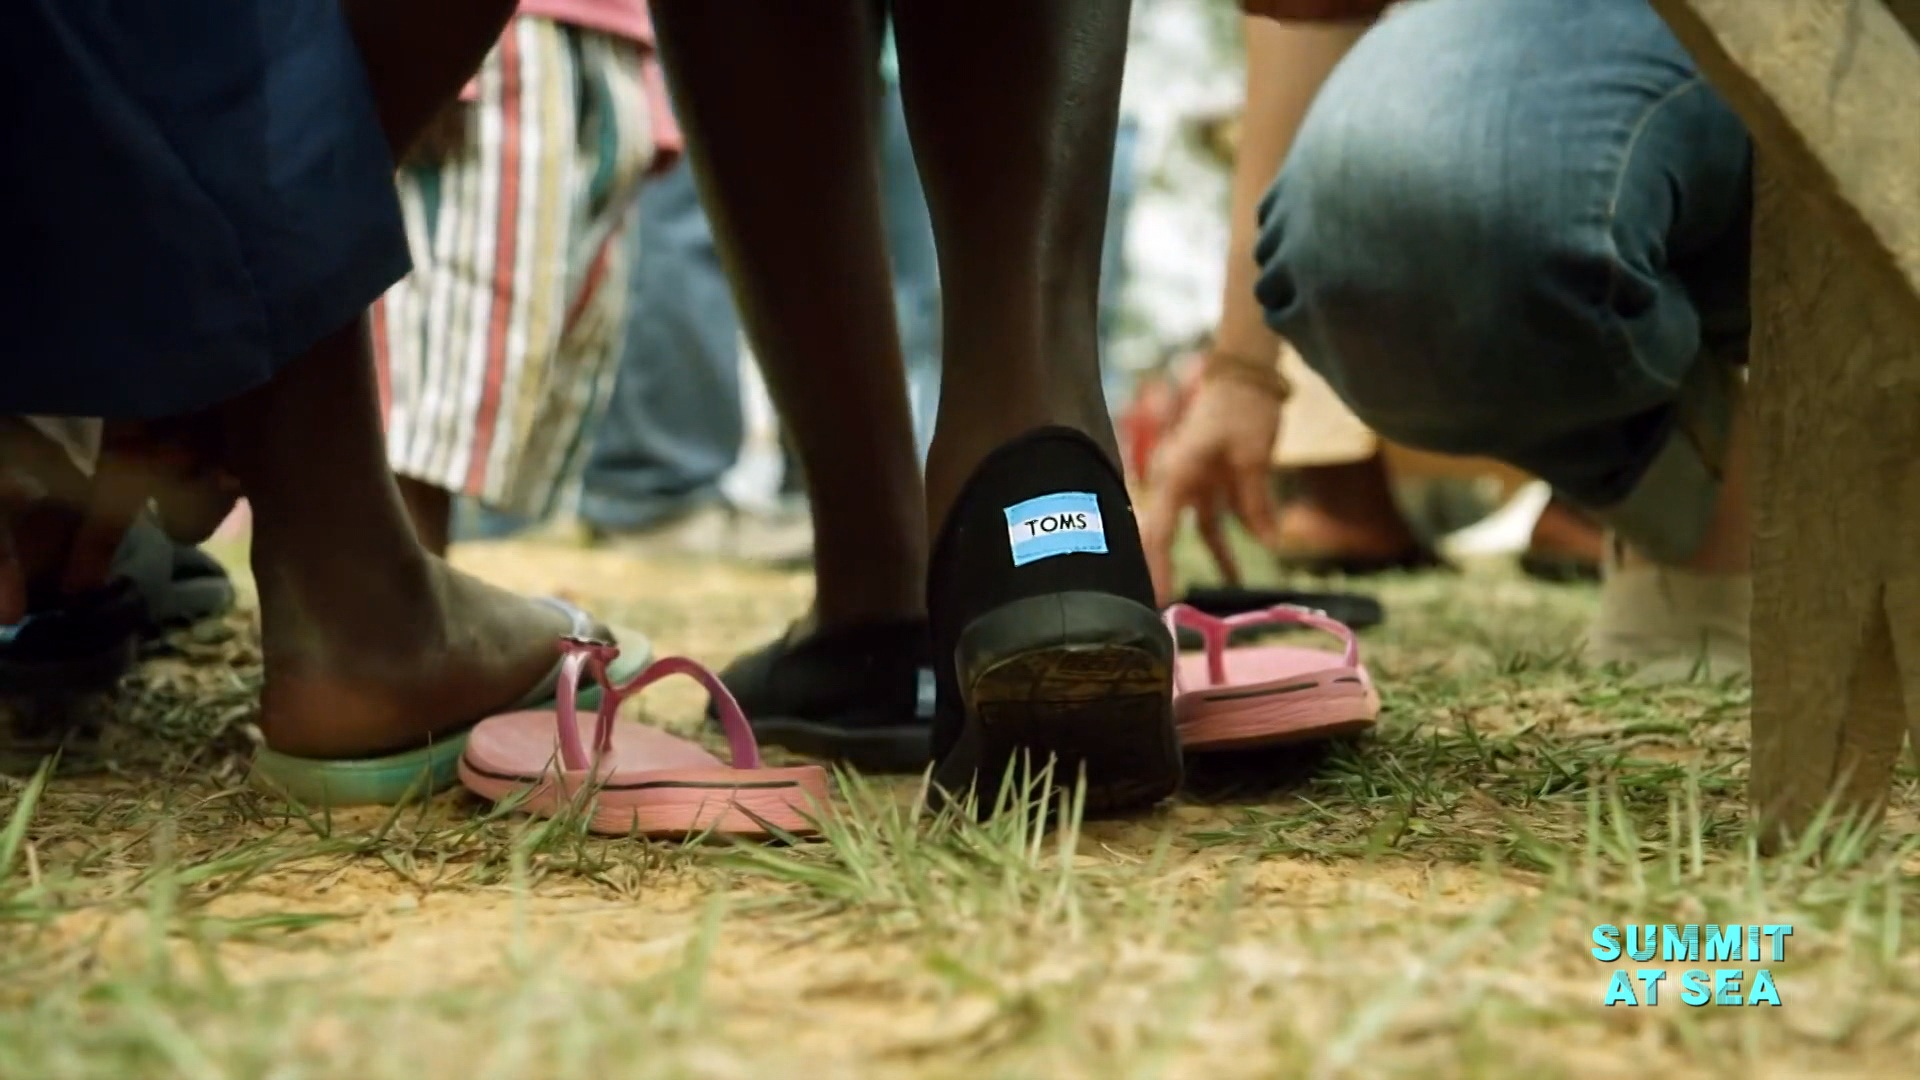 TOMS Shoes: Why giving can be good business